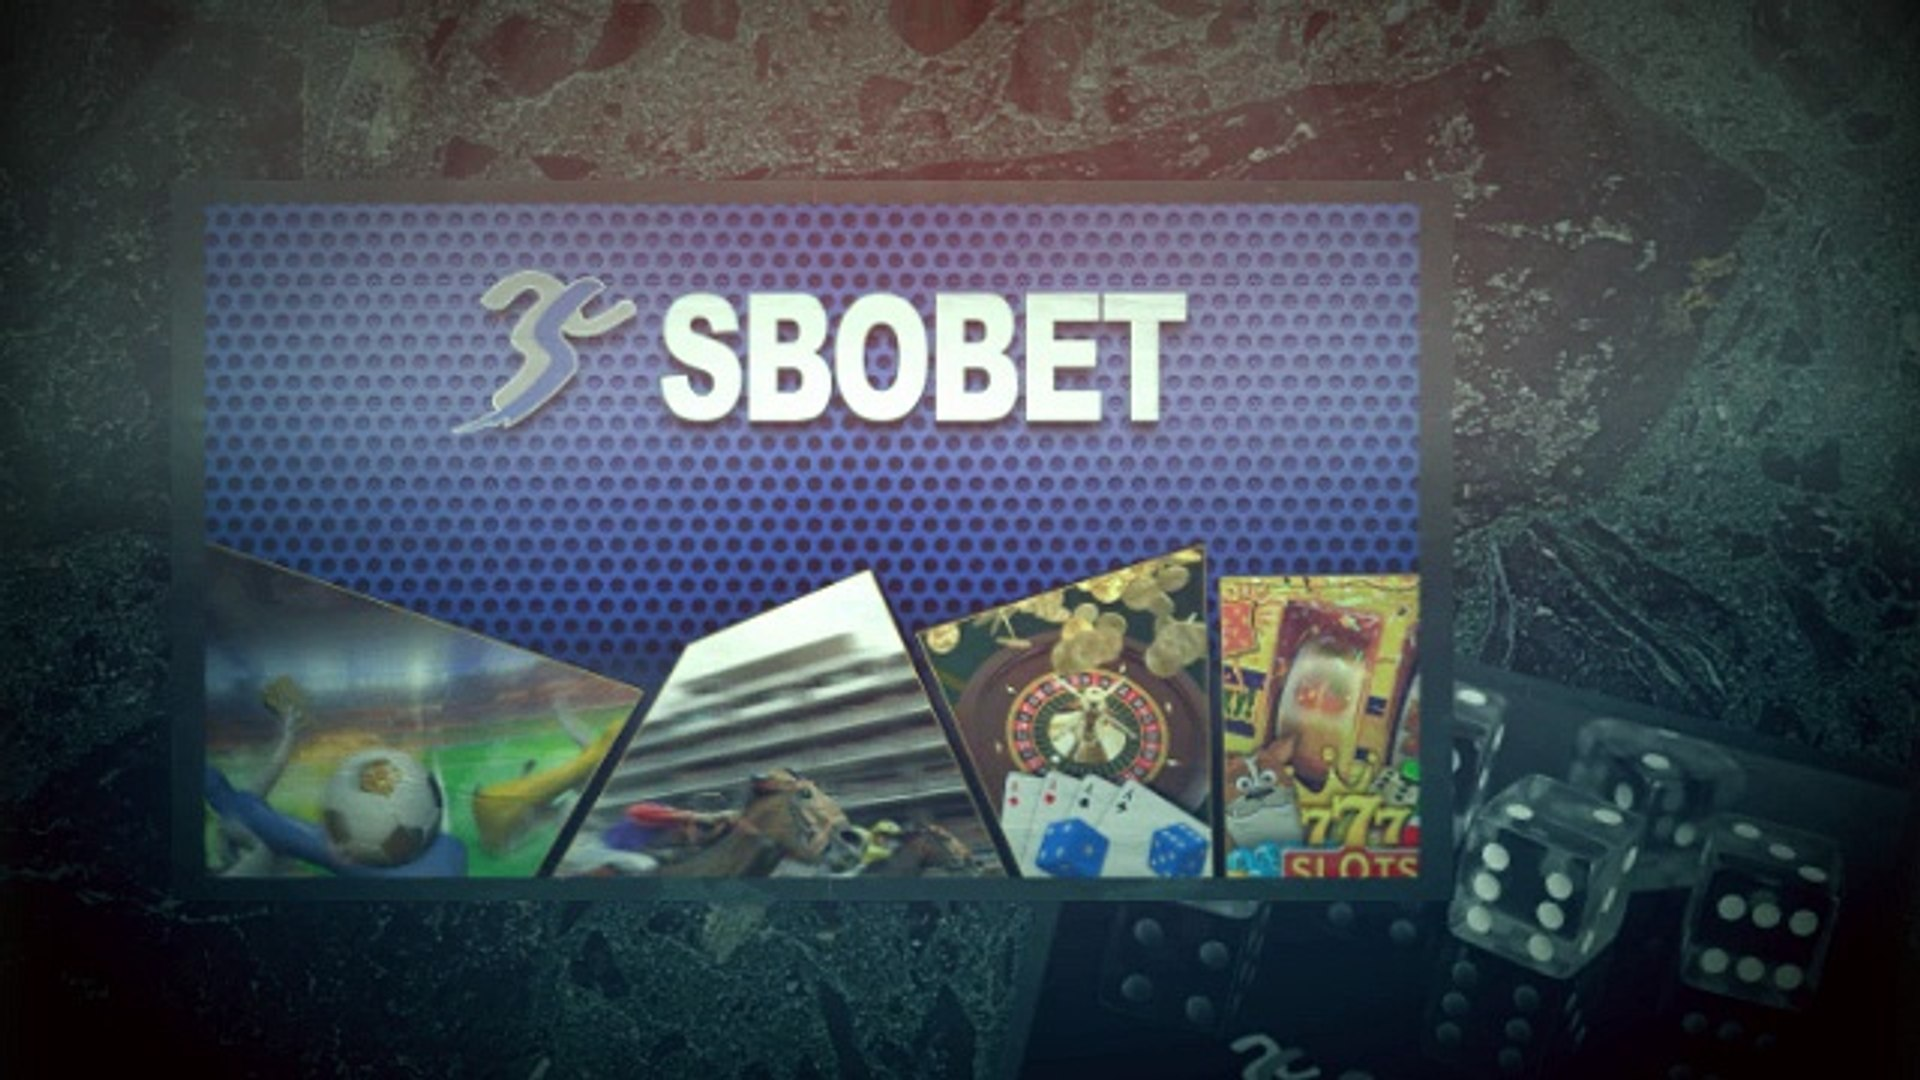 Sbobet — Rules and methods